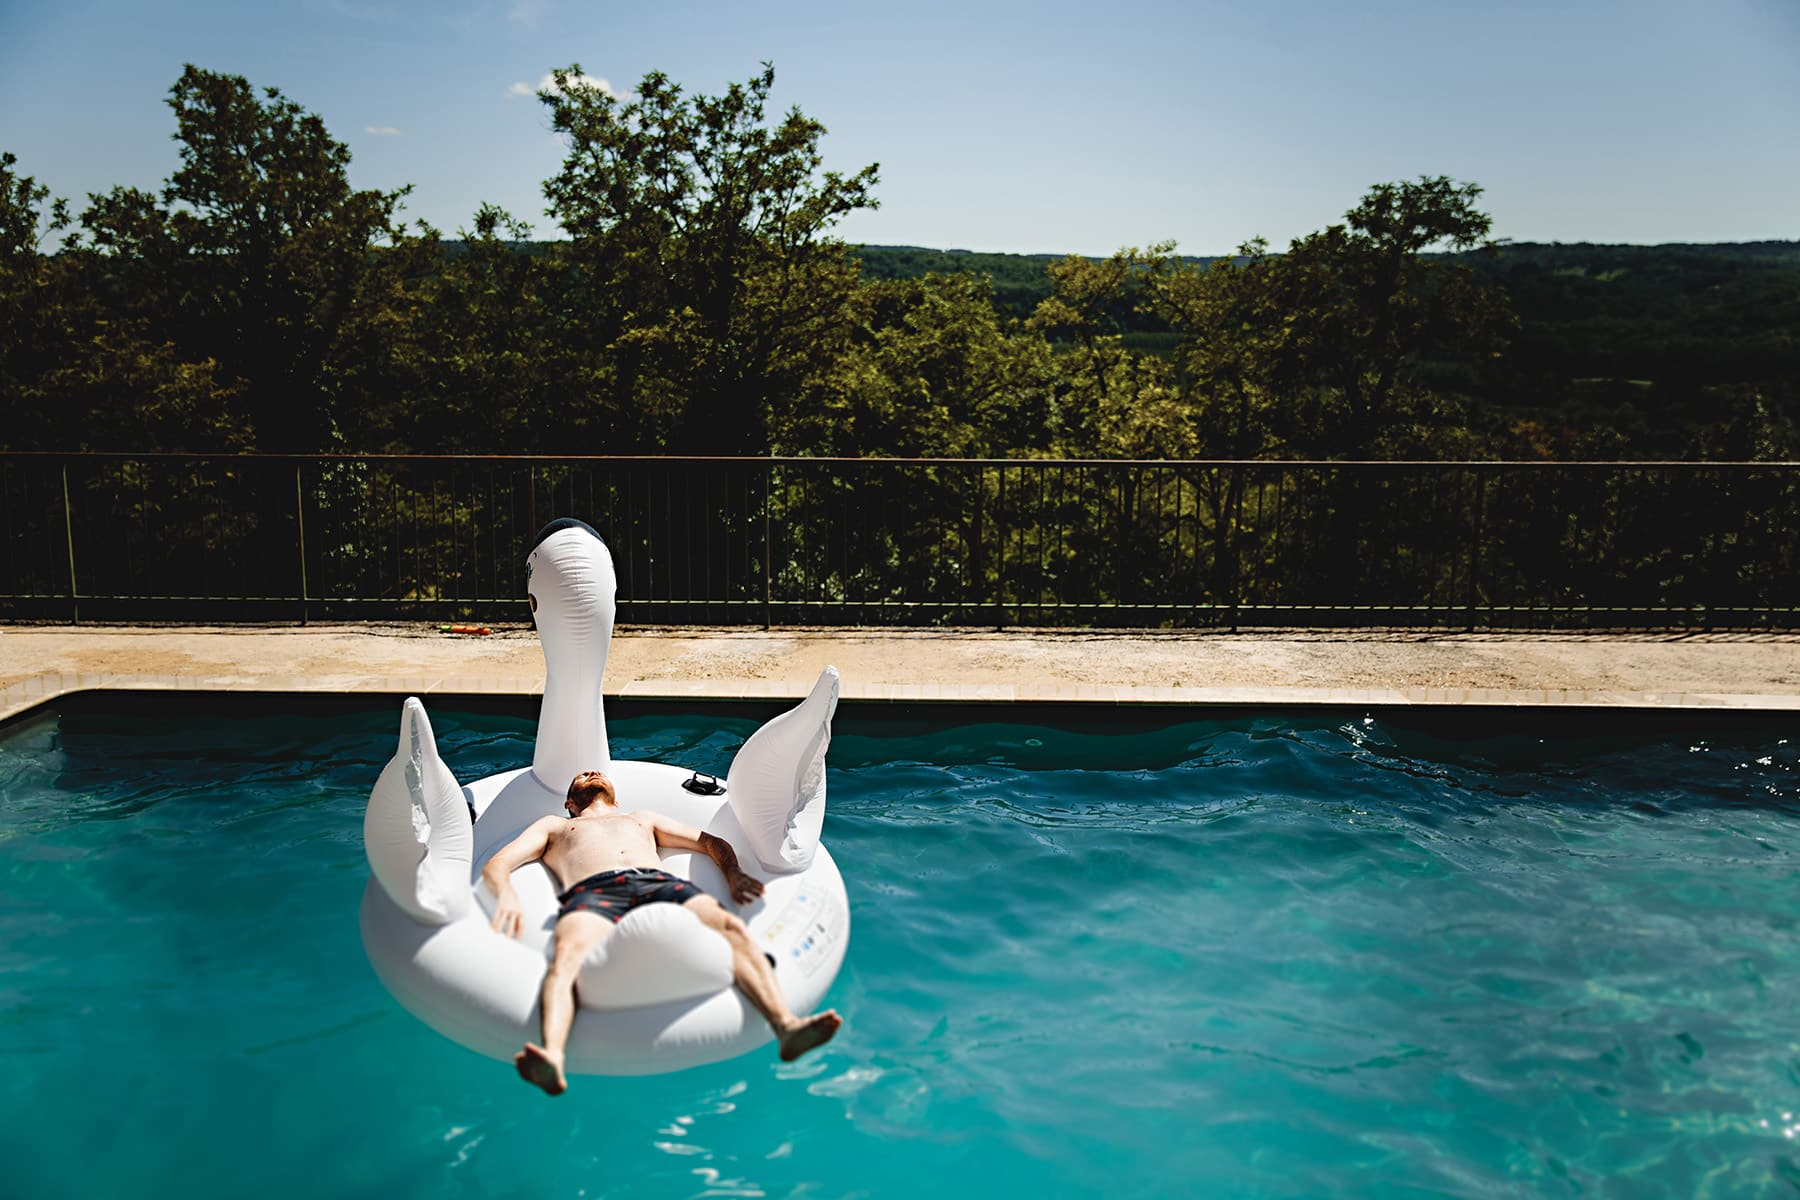 the groom sat in the blue swimmingpool in France at the Chateau Cazenec